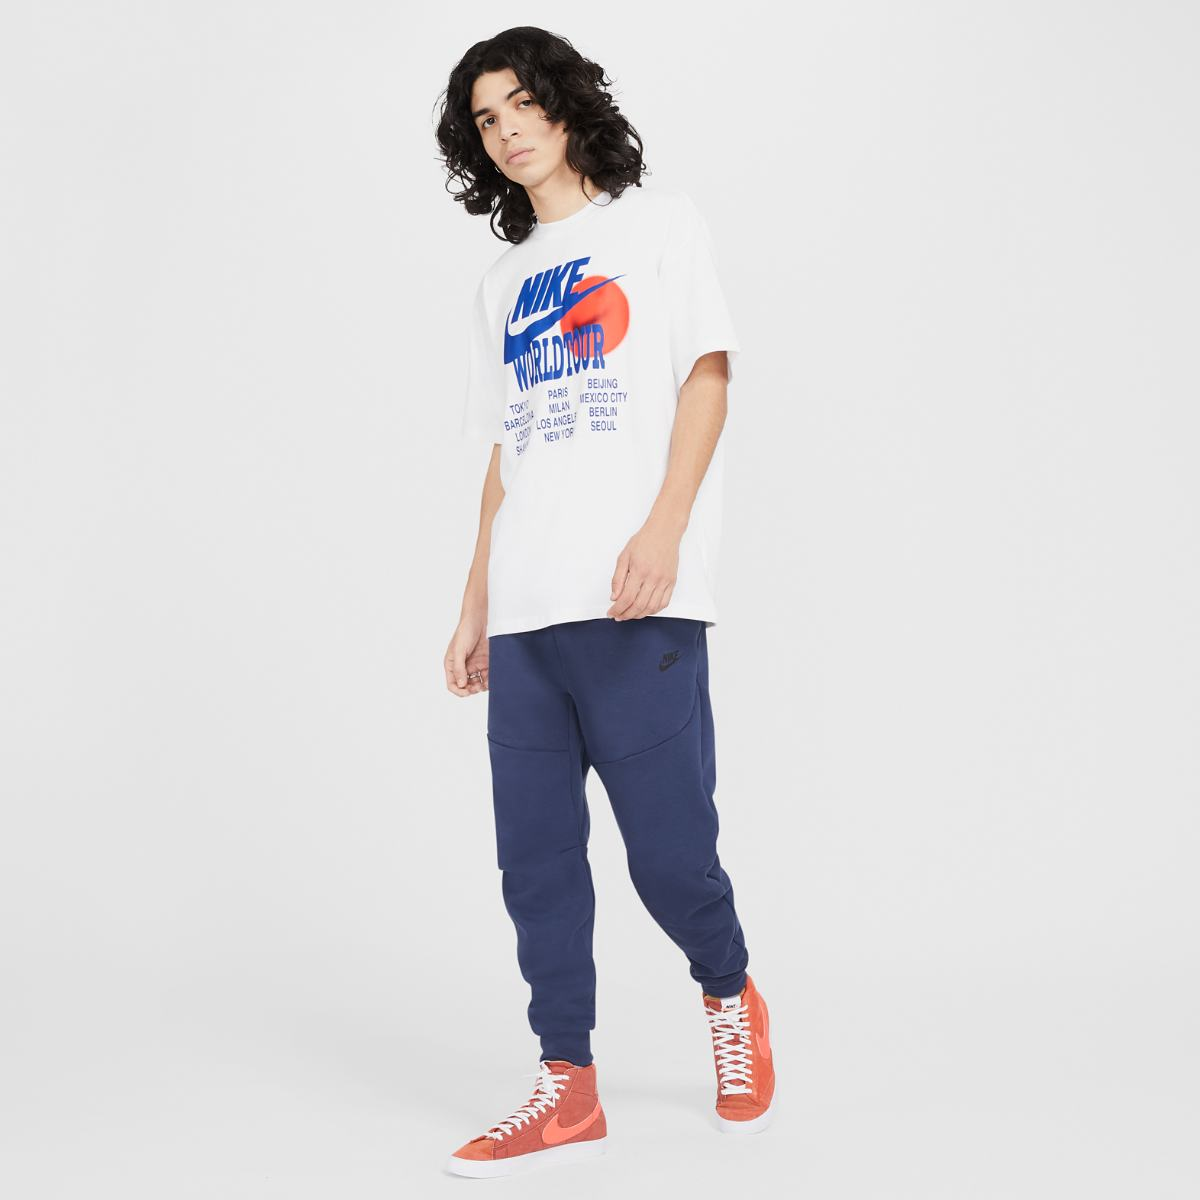 Футболка NIKE M NSW TEE WORLD TOUR